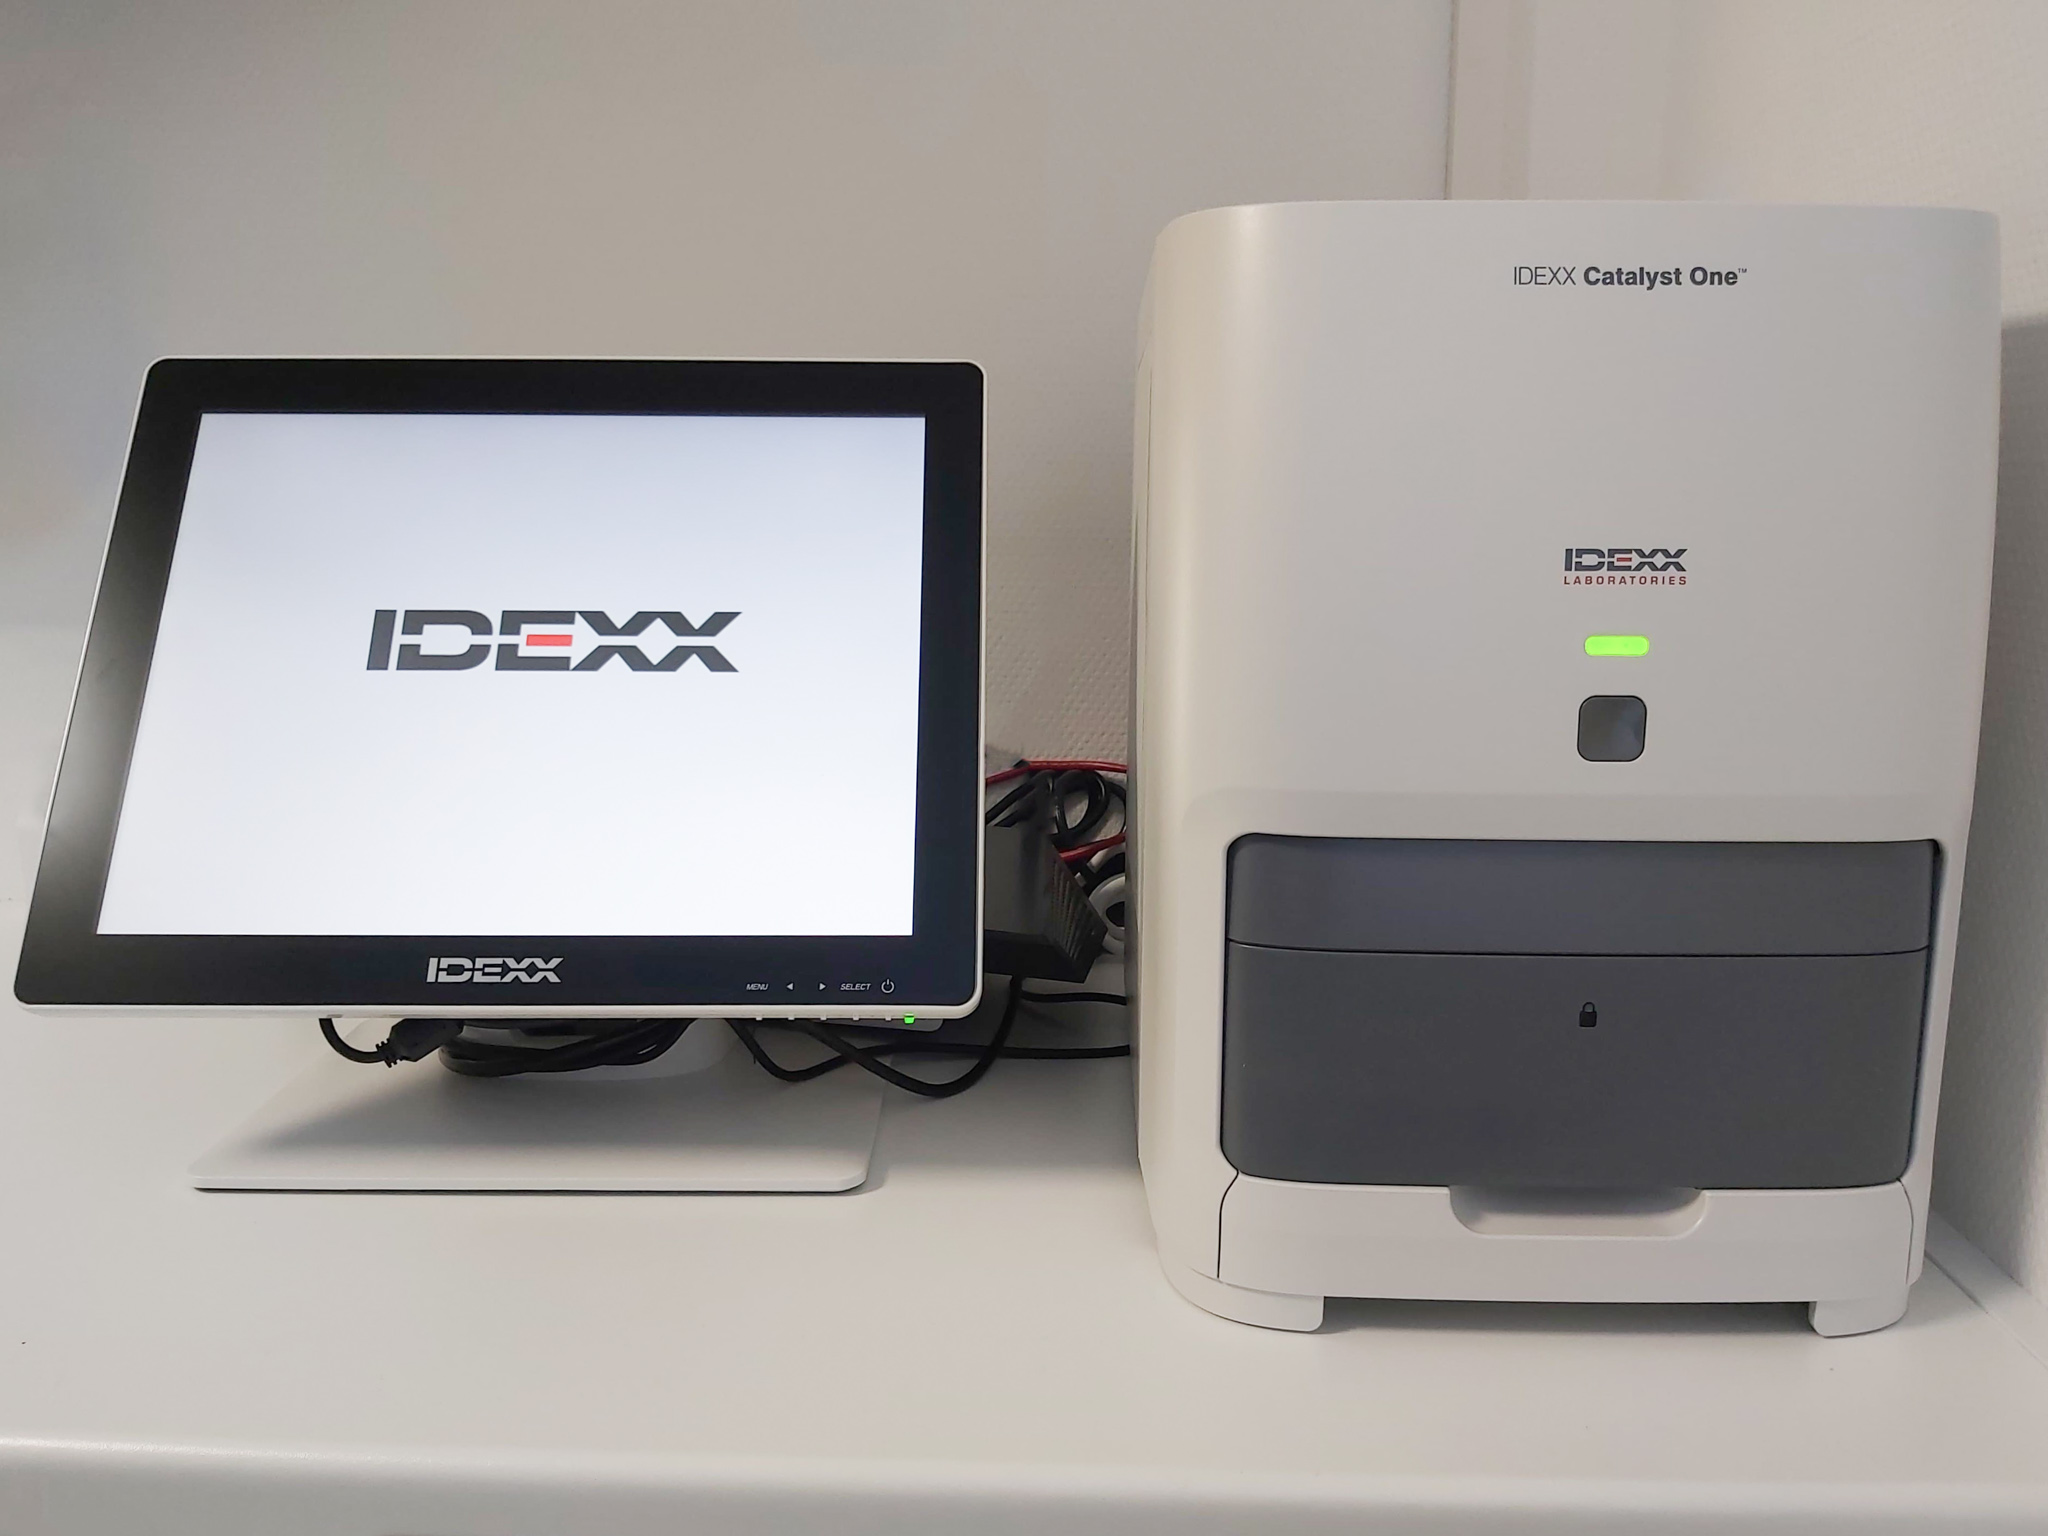 Idexx, Catalyst One, Bloed, bloedanalyse, apparatuur, laboratorium